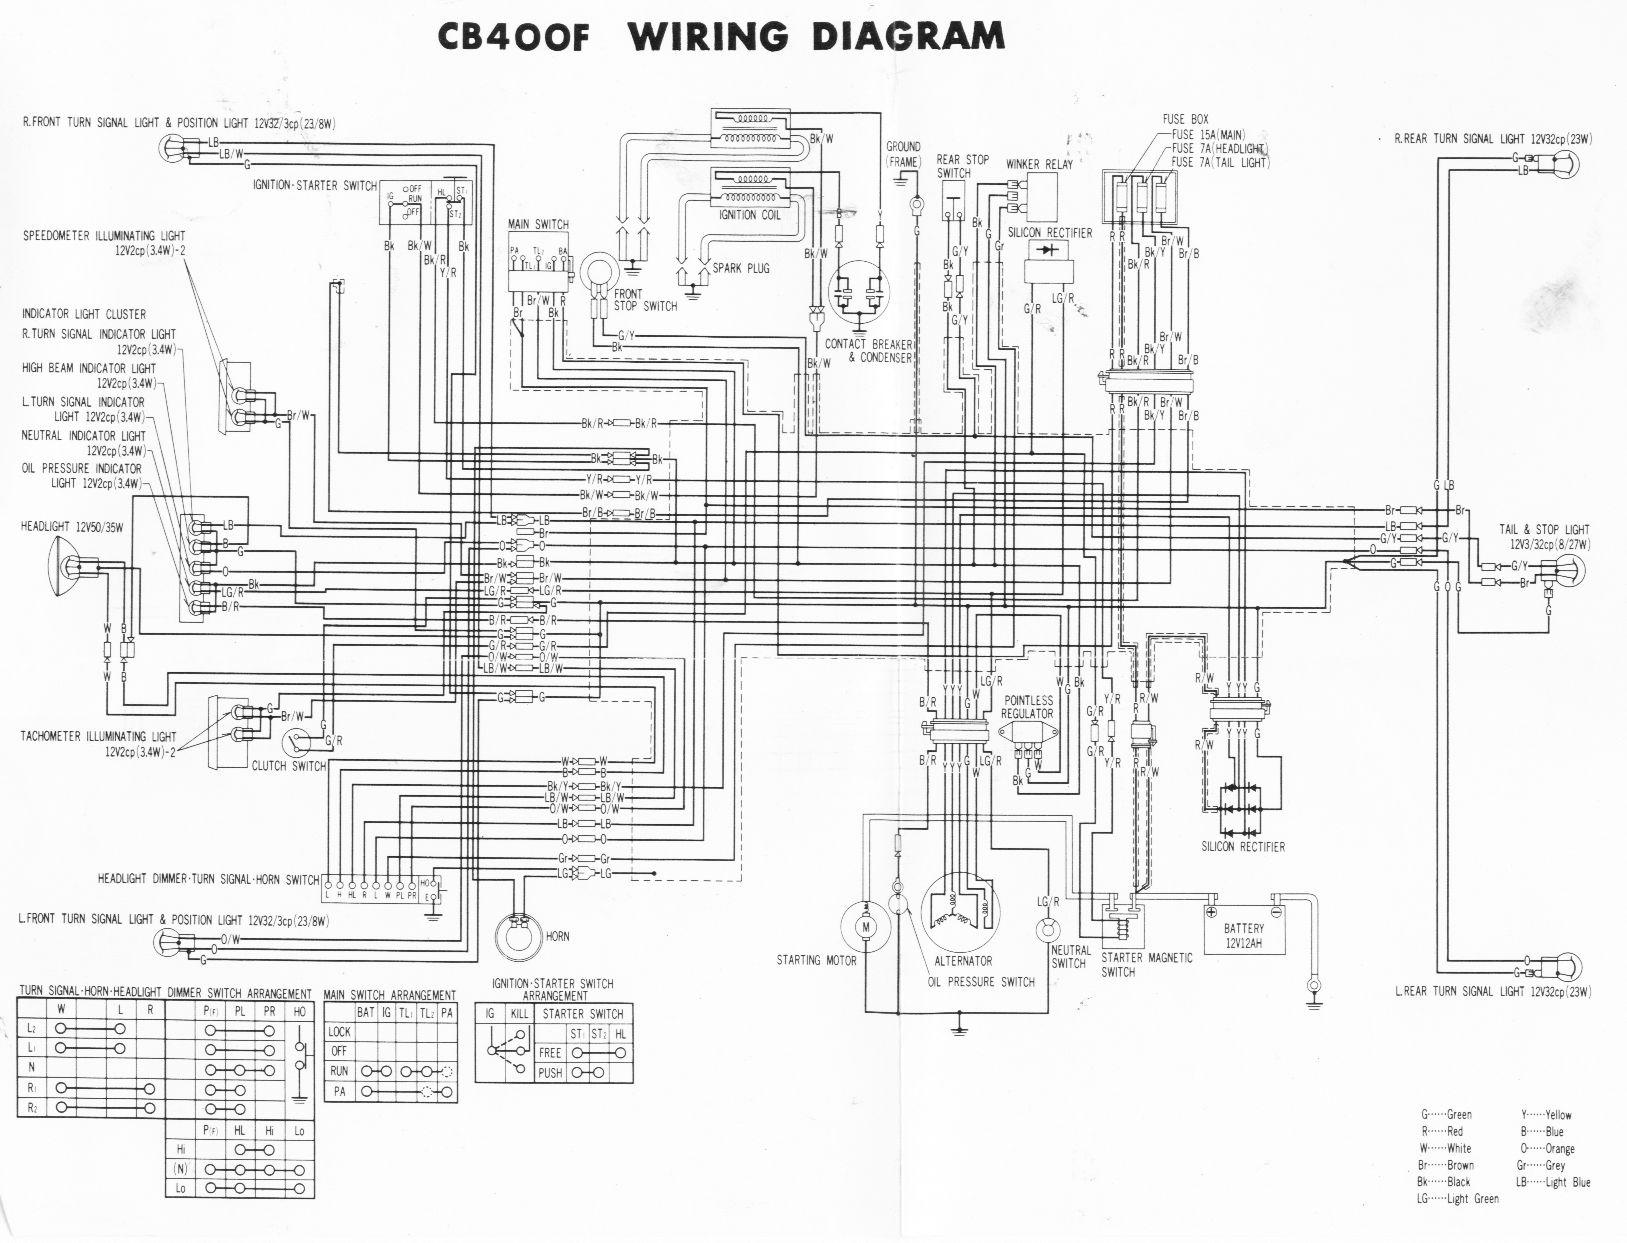 Cb400f Wiring Diagram Wiring Schematic Diagram